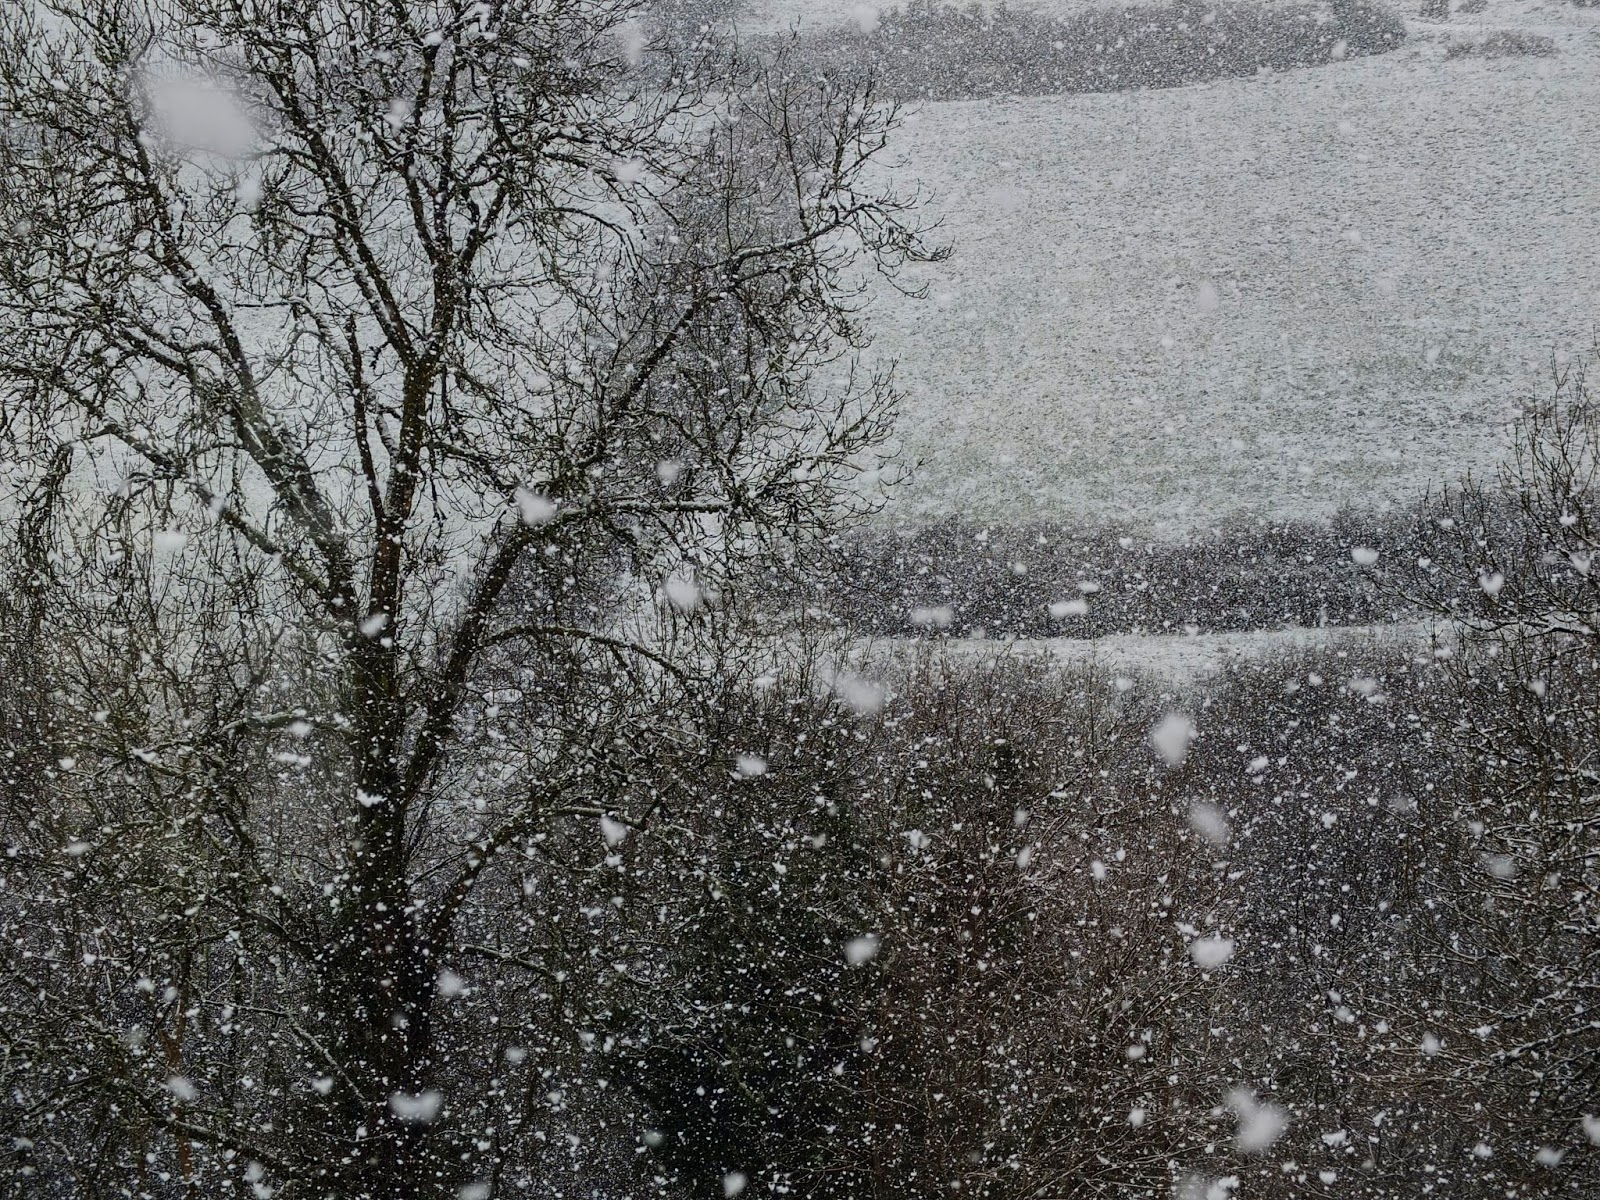 Snowflakes falling from the sky in a valley in North Cork.